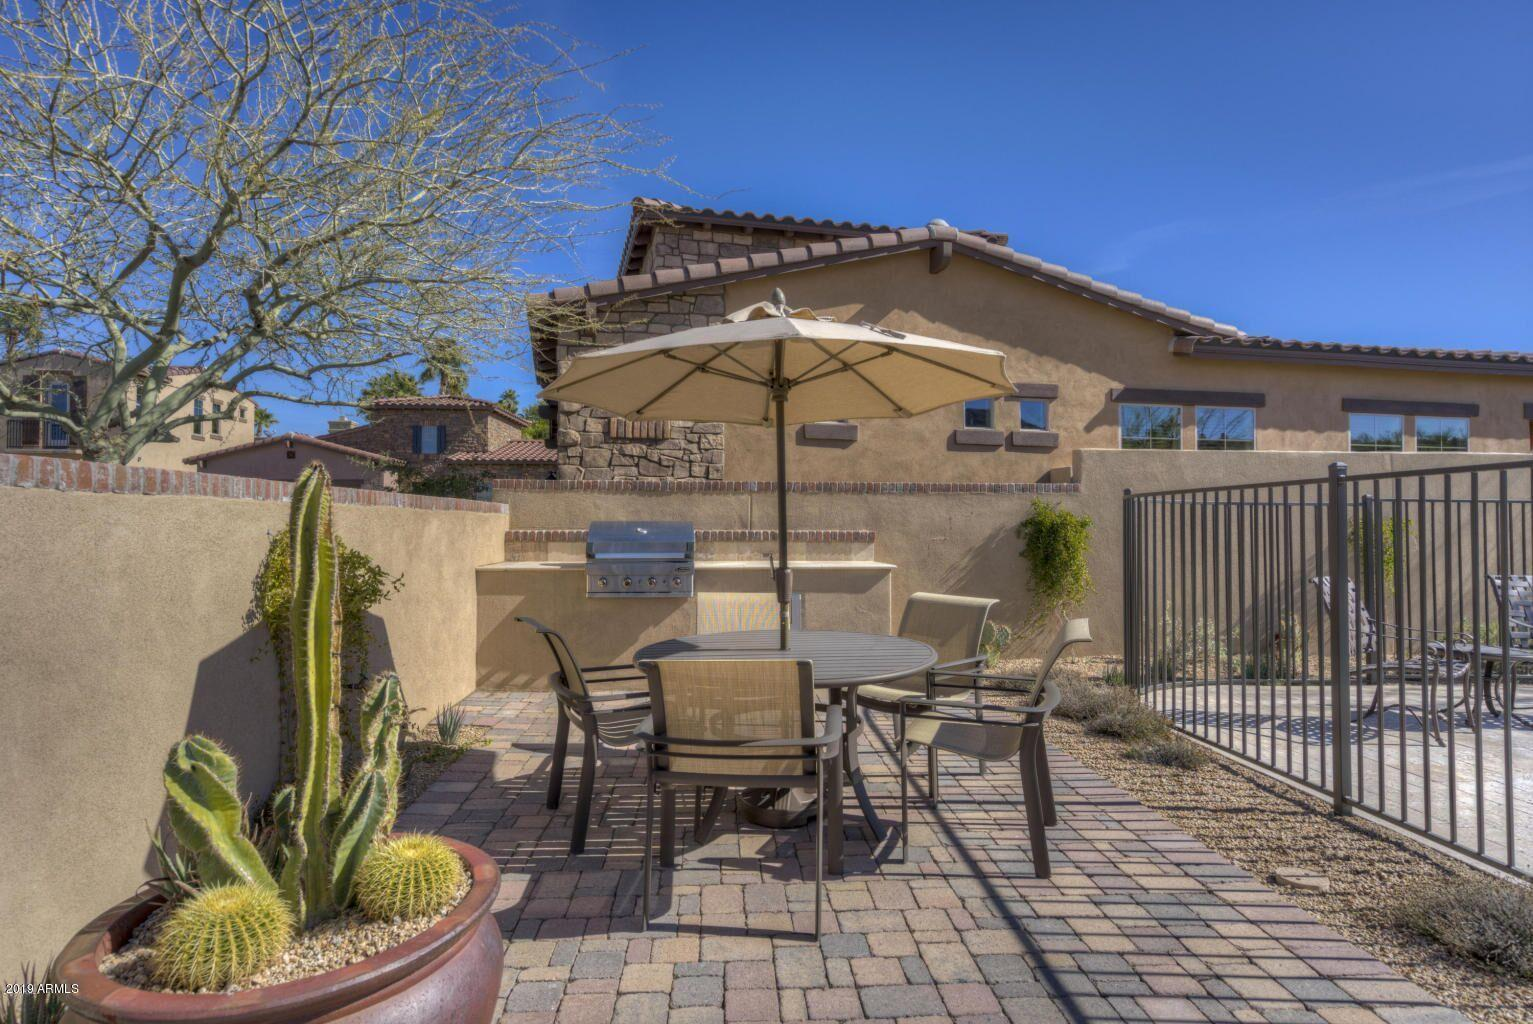 MLS 5966807 20 Almarte Circle, Carefree, AZ 85377 Carefree AZ Condo or Townhome